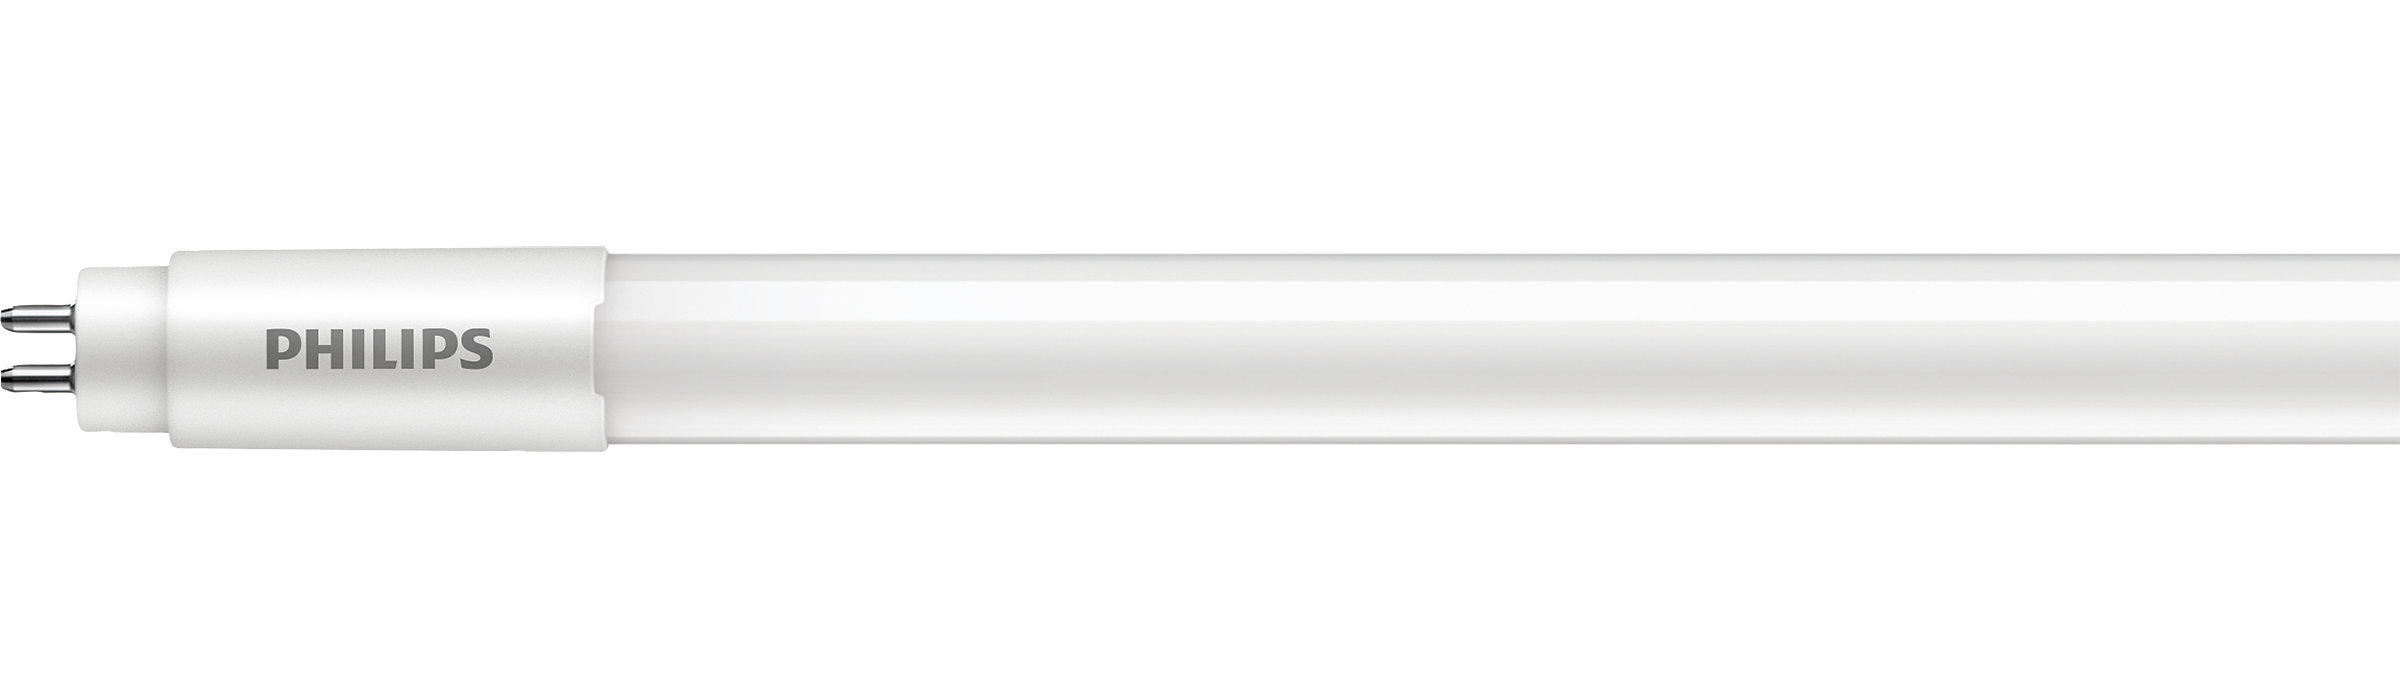 The new generation of Mains T5 LEDtube lighting